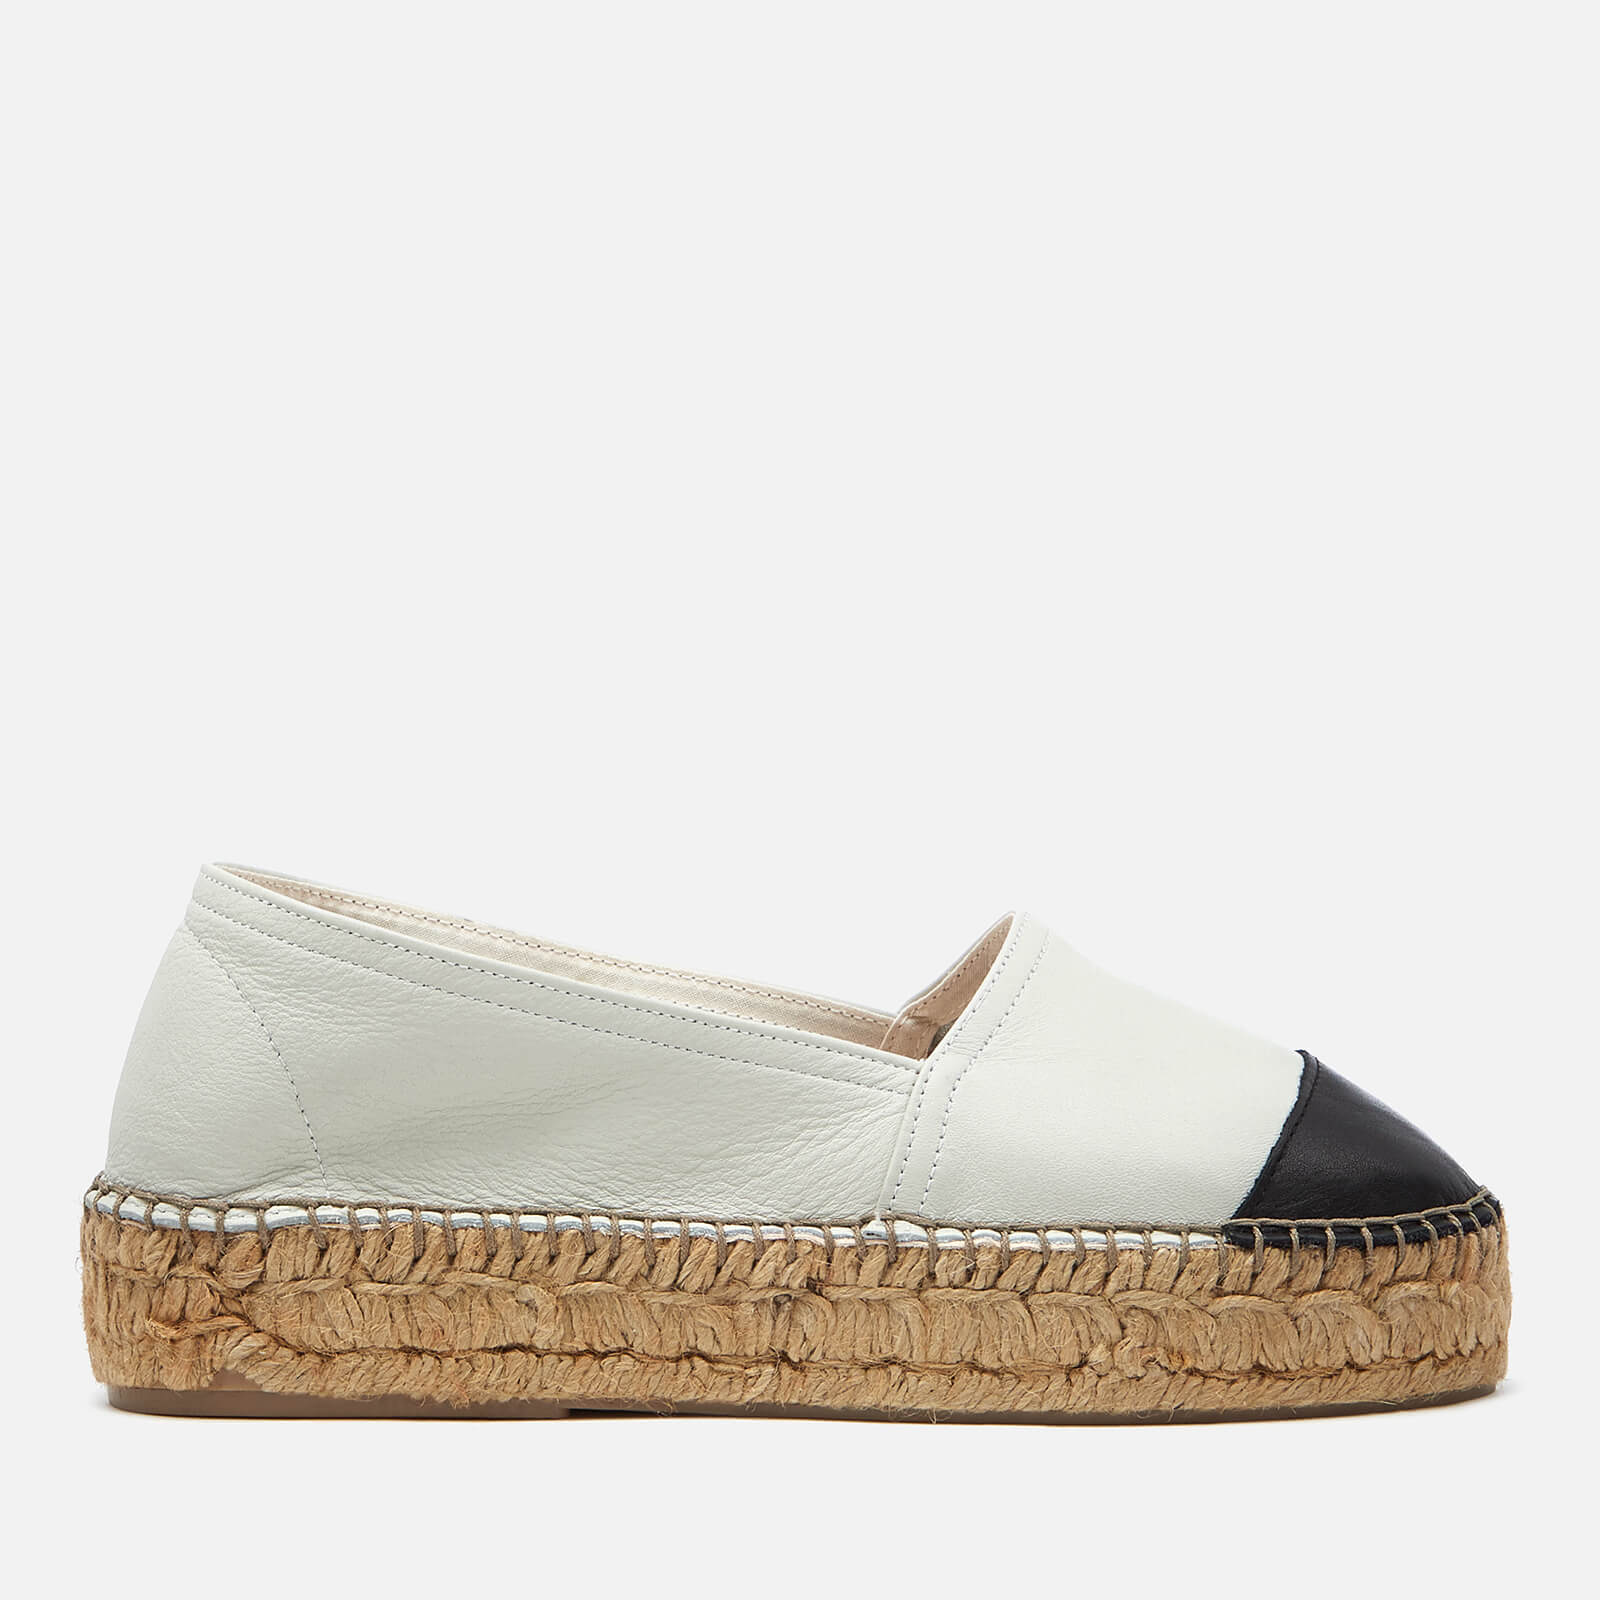 687c0792b00 Kurt Geiger London Women's Mellow Leather Espadrilles - White/Black